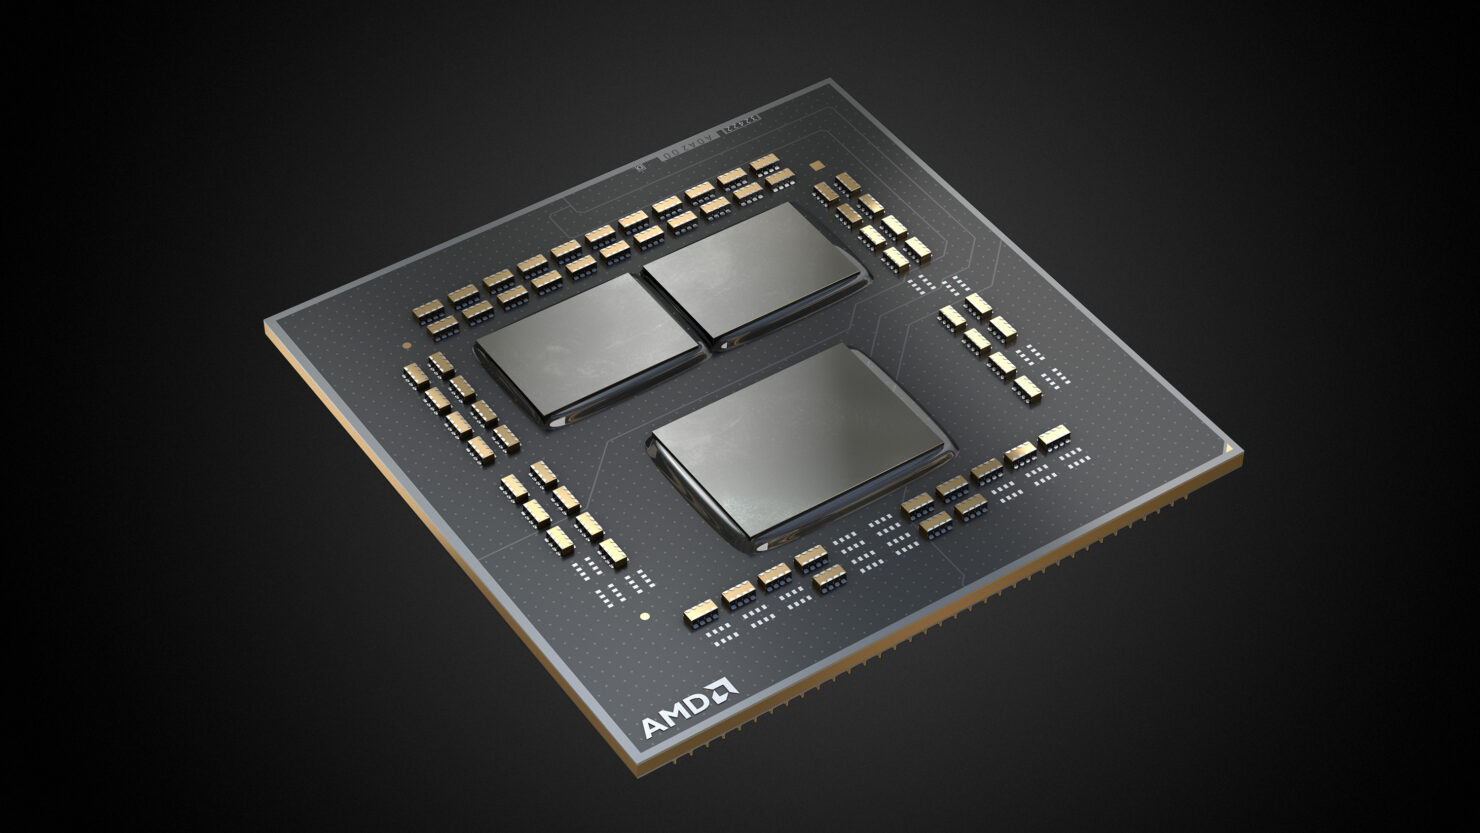 amd-agesa-120.1-bios-firmware-tested-on-msi-x570-&-b550-motherboards,-fixes-l3-cache-performance-&-includes-improvements-for-ryzen-5000-cpus